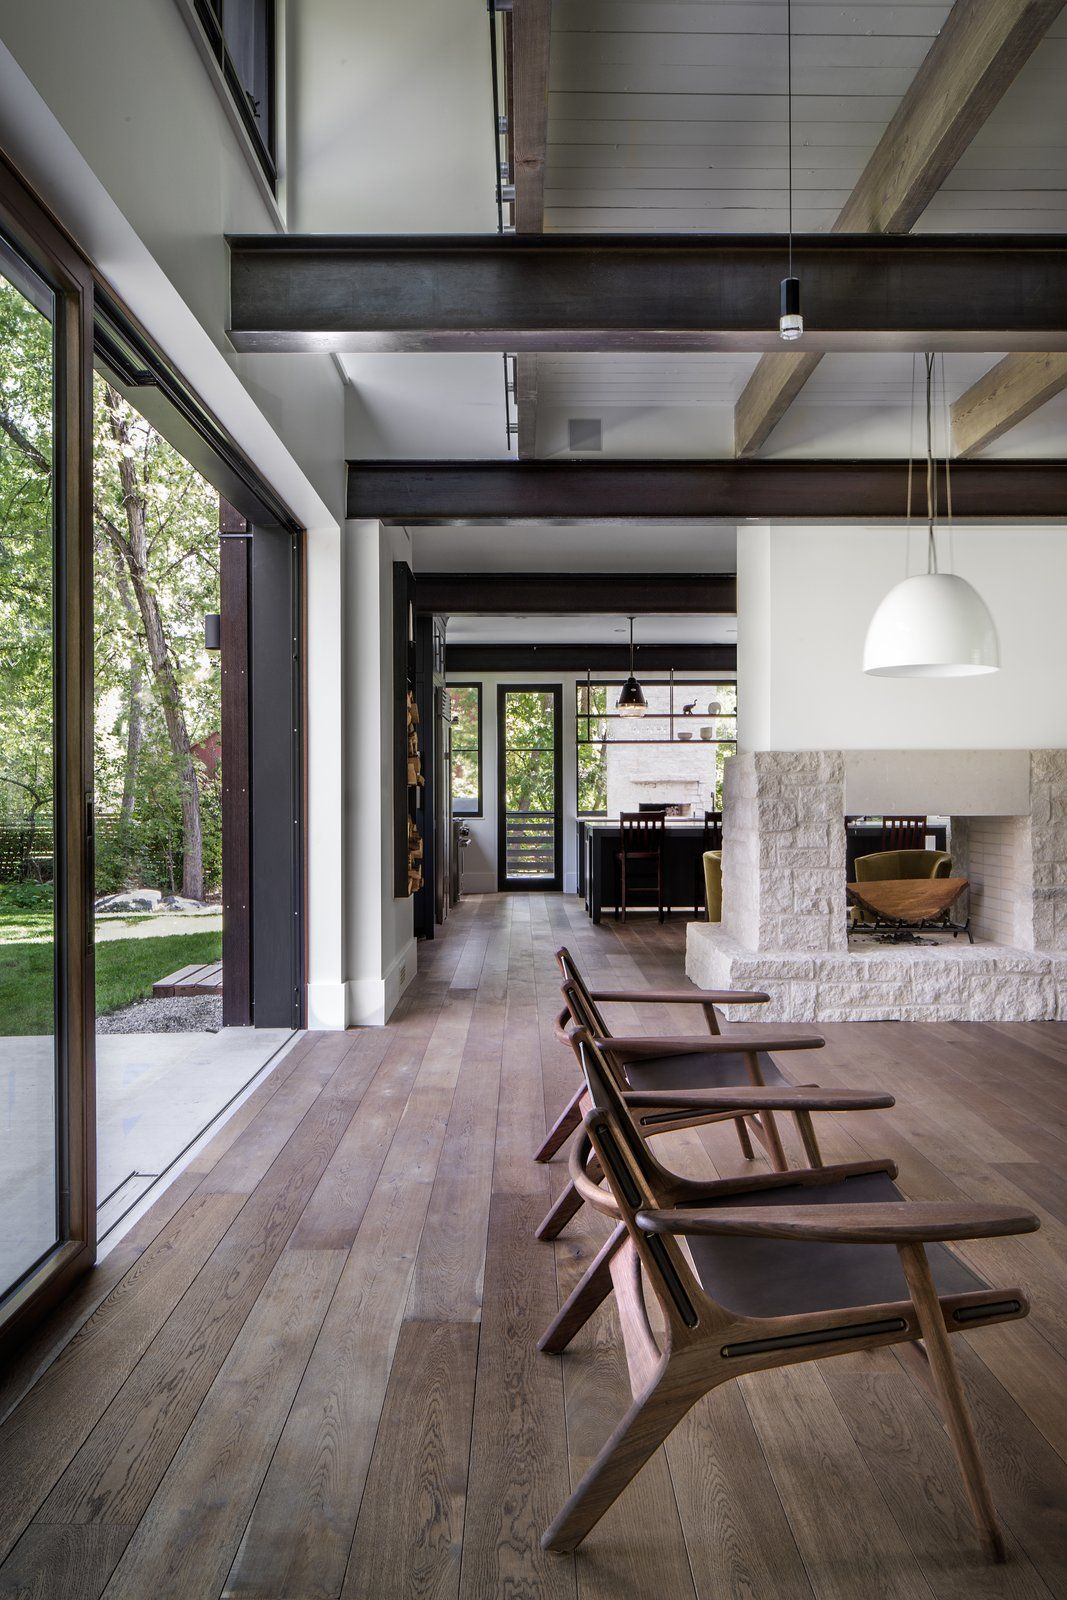 Photo 8 Of 12 In A Colorado Home Puts A Modern Twist On Farmhouse Minimalism Interior Modern House Design Farm House Living Room,Small Medical Office Design